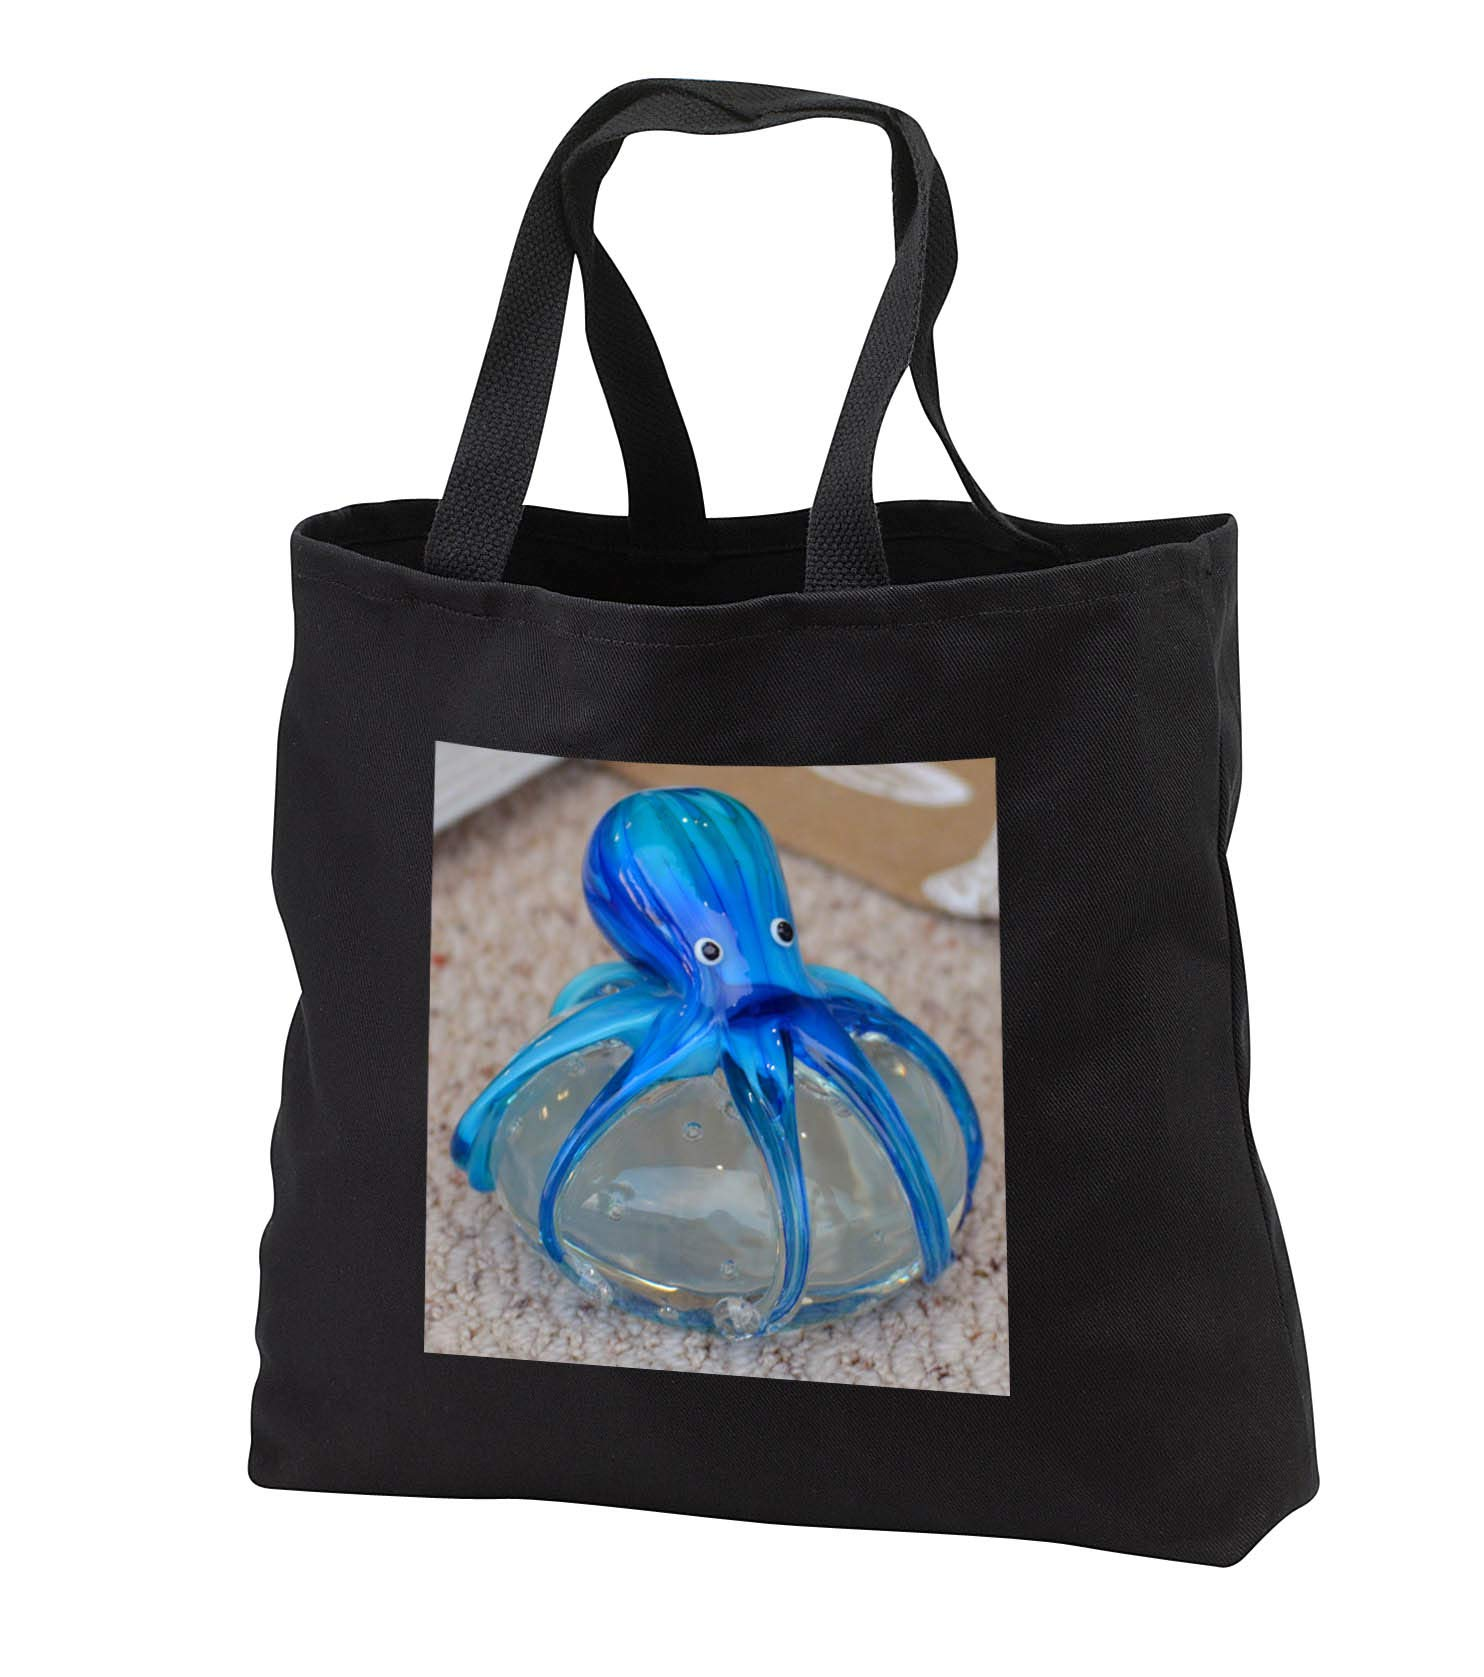 Susans Zoo Crew Animal - blue glass octopus art animal - Tote Bags - Black Tote Bag 14w x 14h x 3d (tb_294098_1)